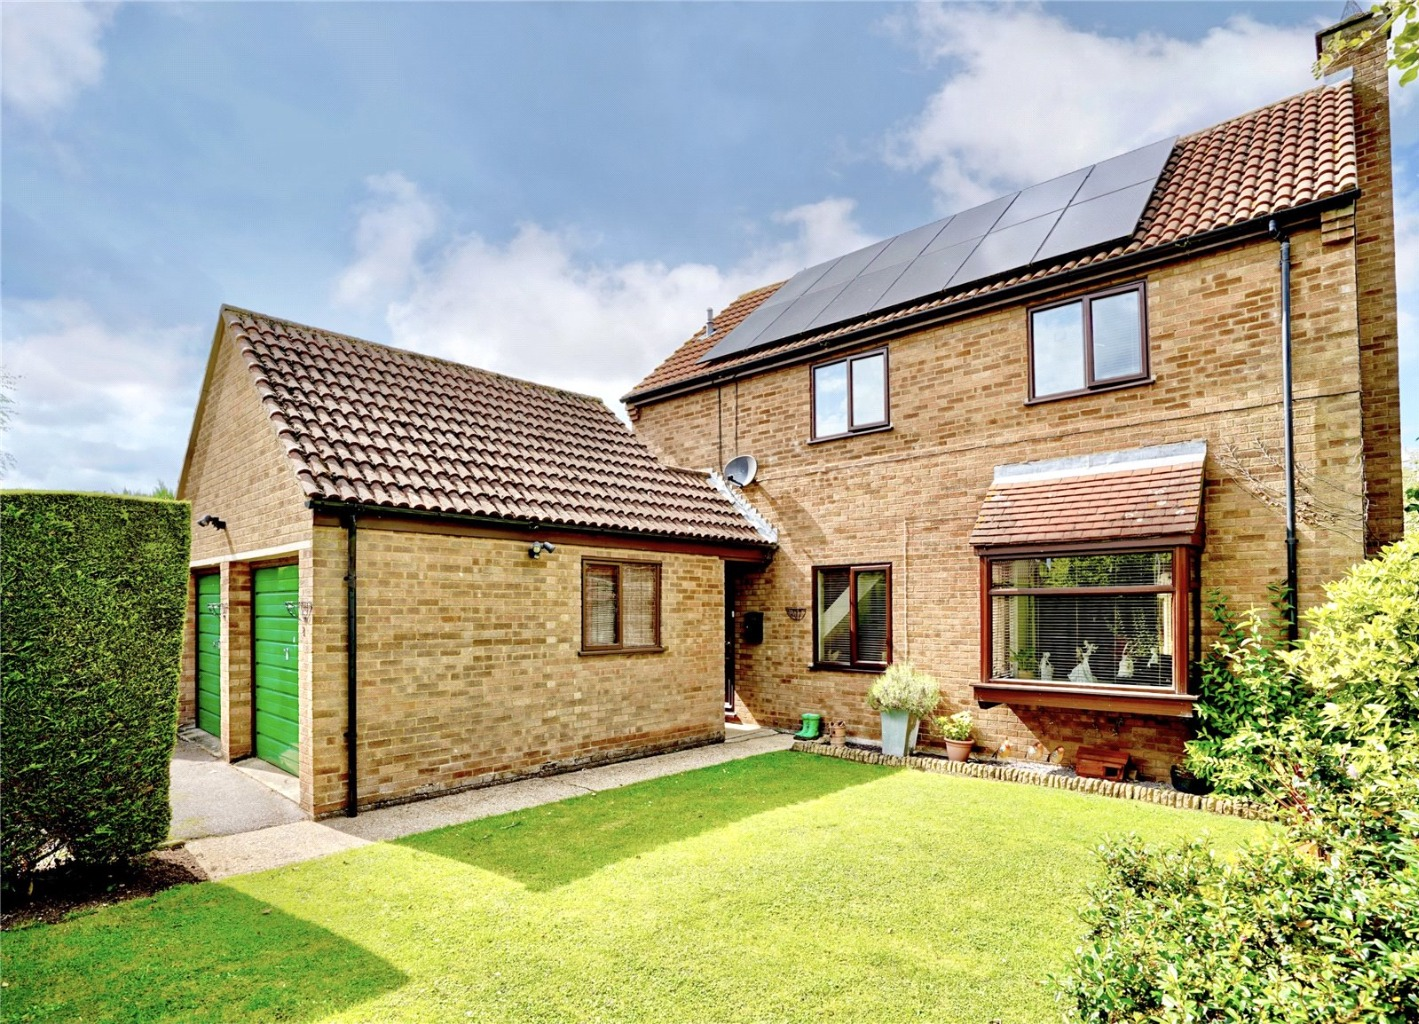 4 bed detached house for sale in Chestnut Close, Huntingdon - Property Image 1